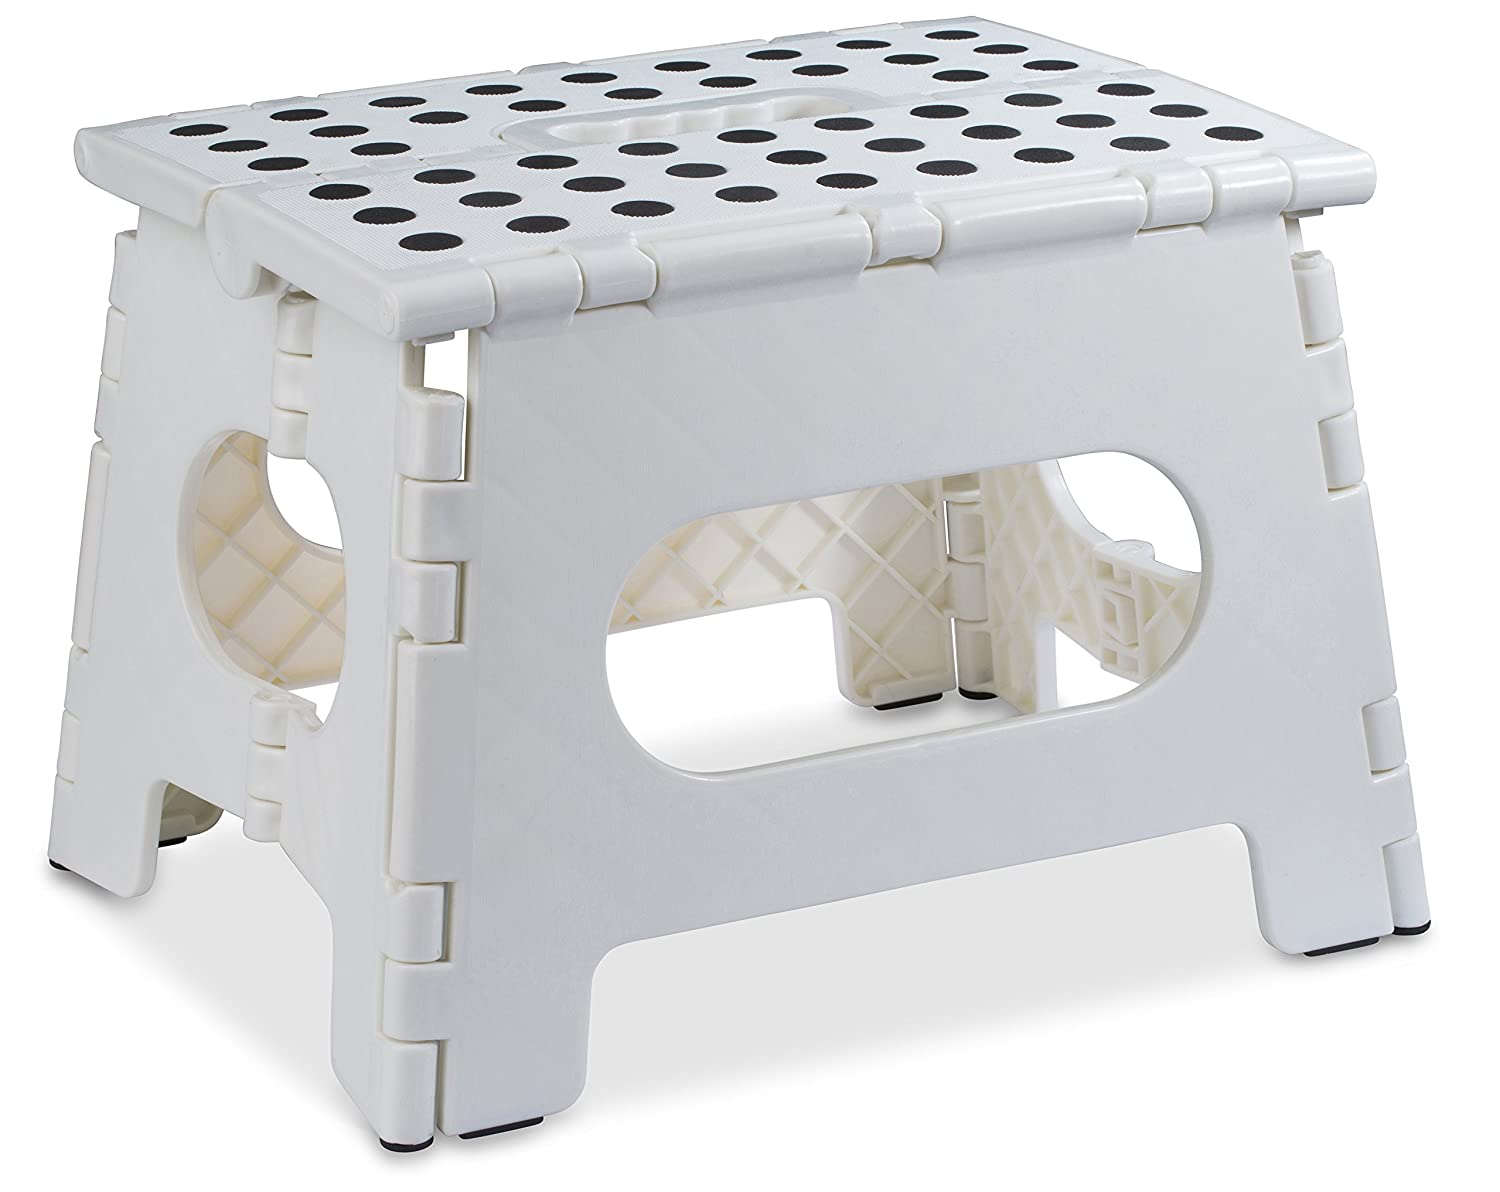 Folding Step Stool - 11 Wide - The Lightweight Step Stool is Sturdy Enough to Support Adults and Safe Enough for Kids. Opens Easy with One Flip. Great for Kitchen, Bathroom, Bedroom, Kids or Adults. Handy Laundry 5196